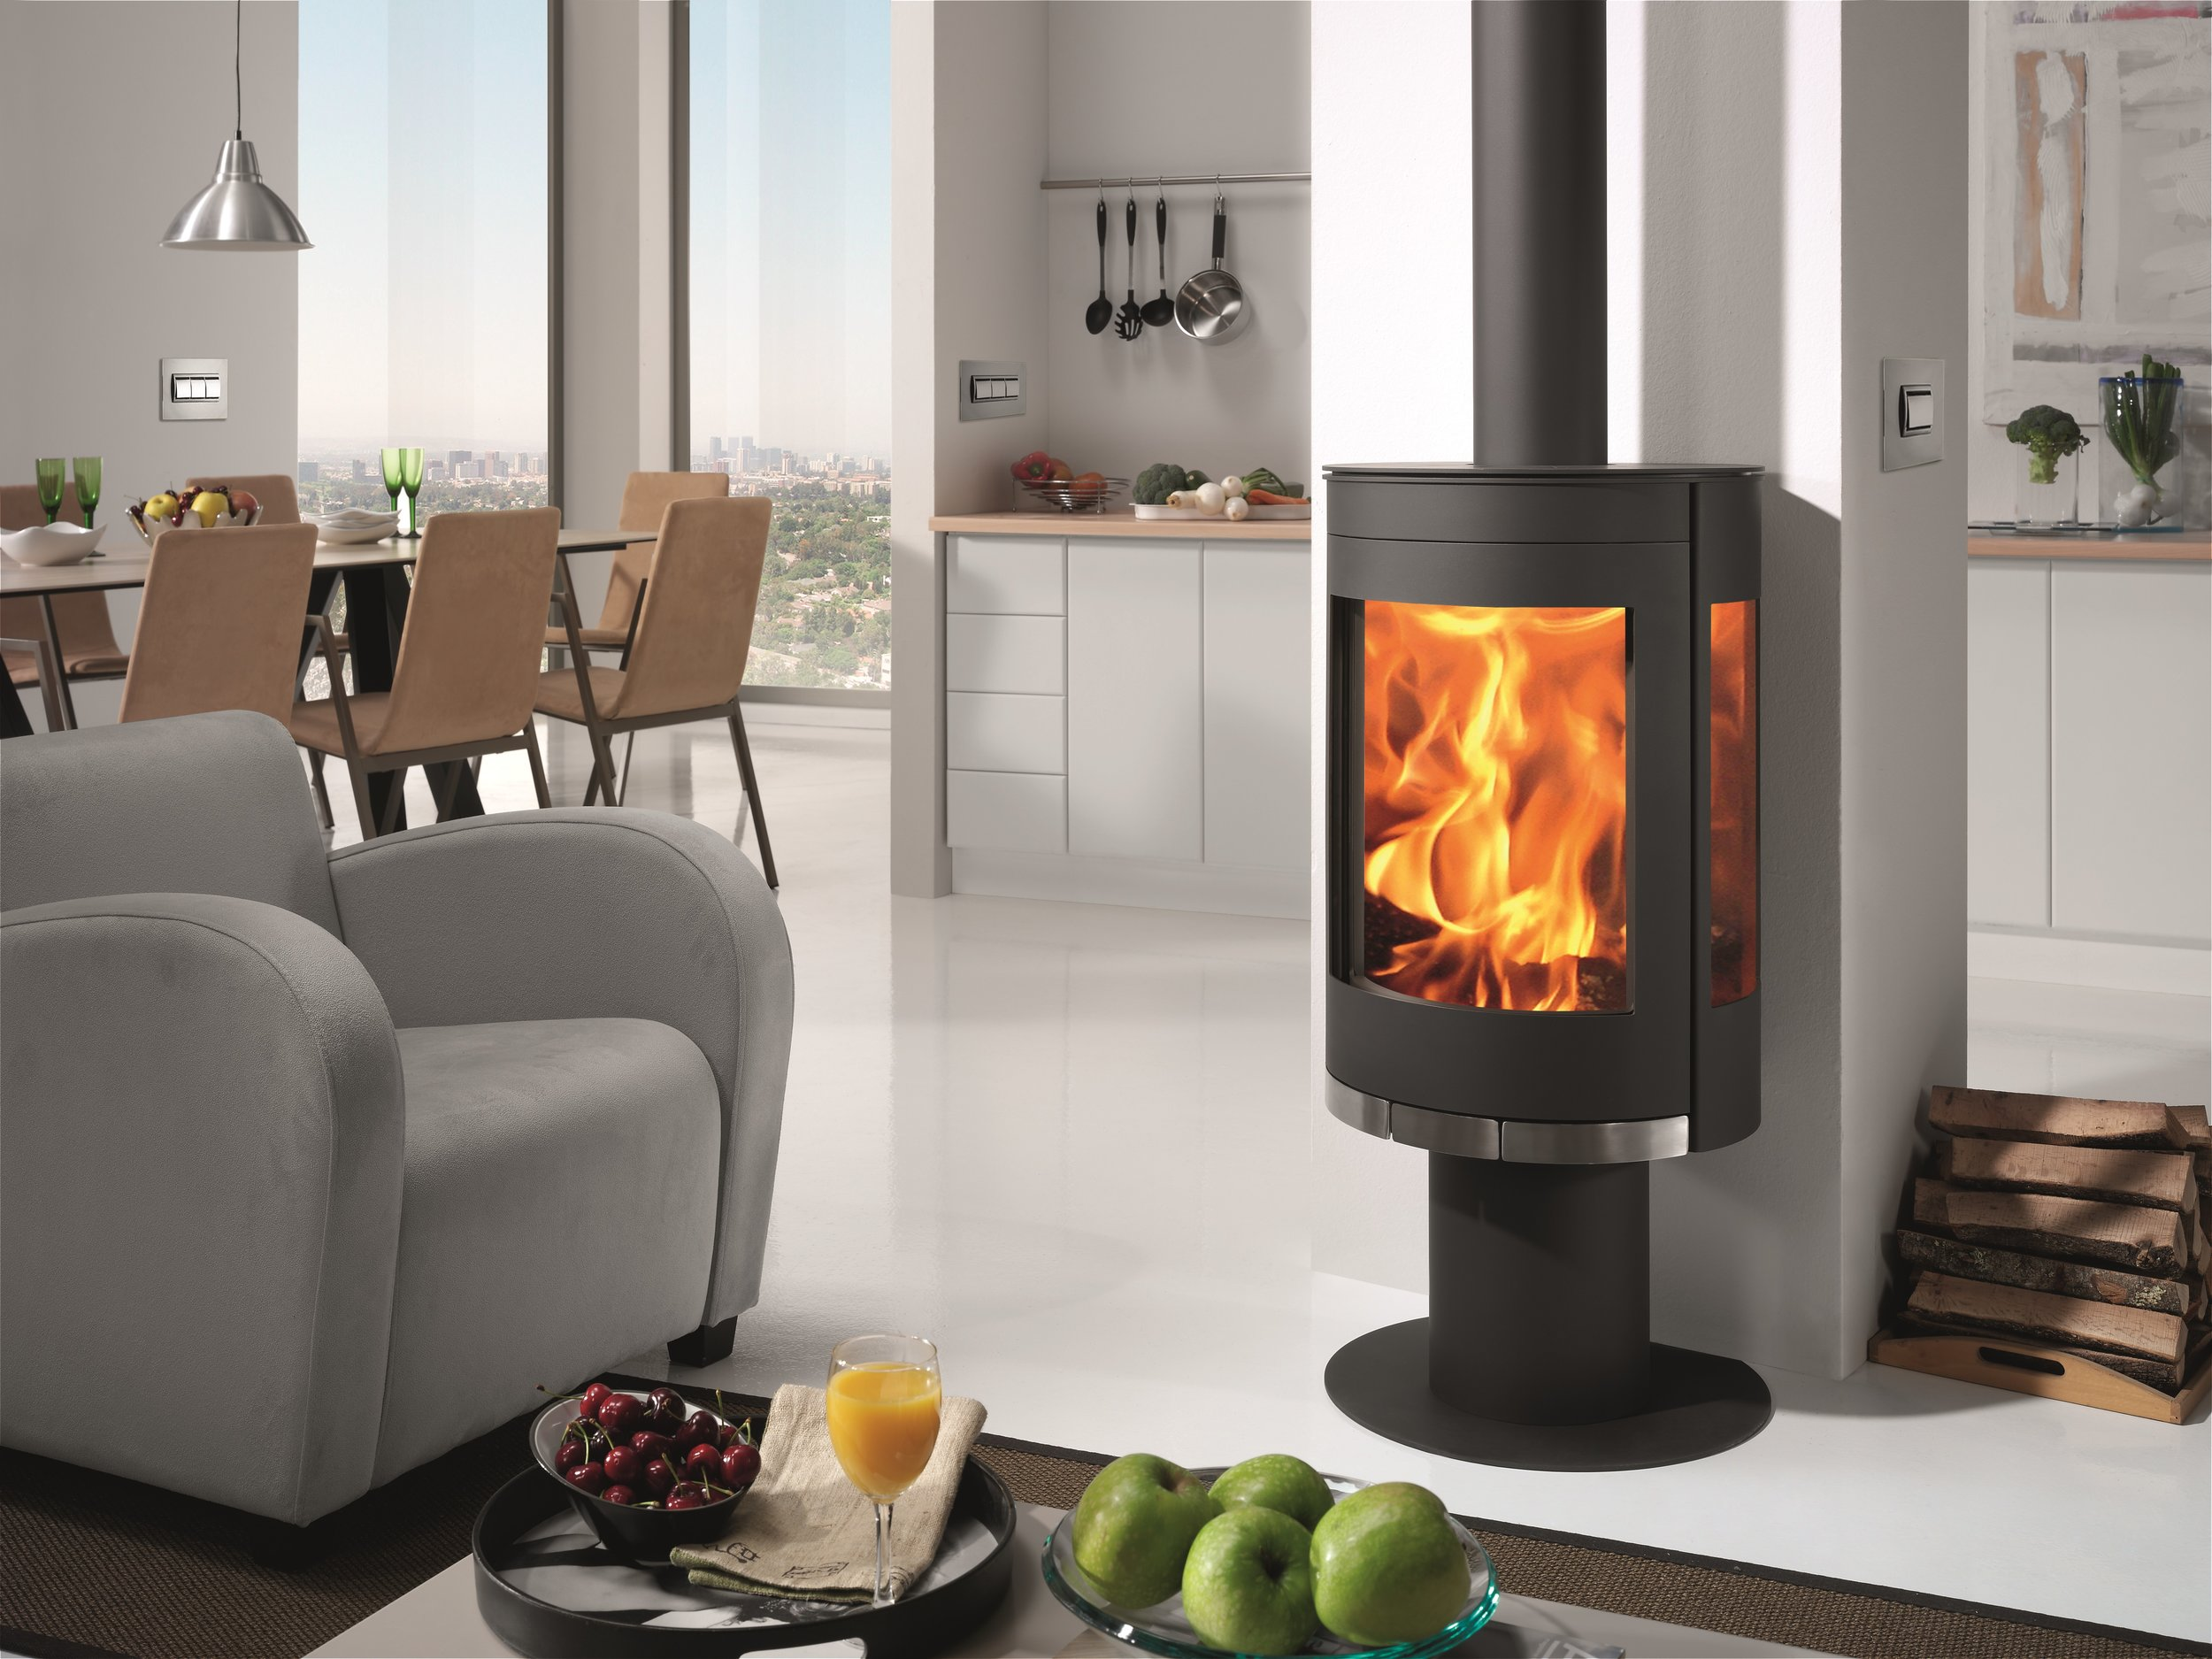 Our Vega wood burning stove has the perfect view, three glass panels for a full view of fire..jpg